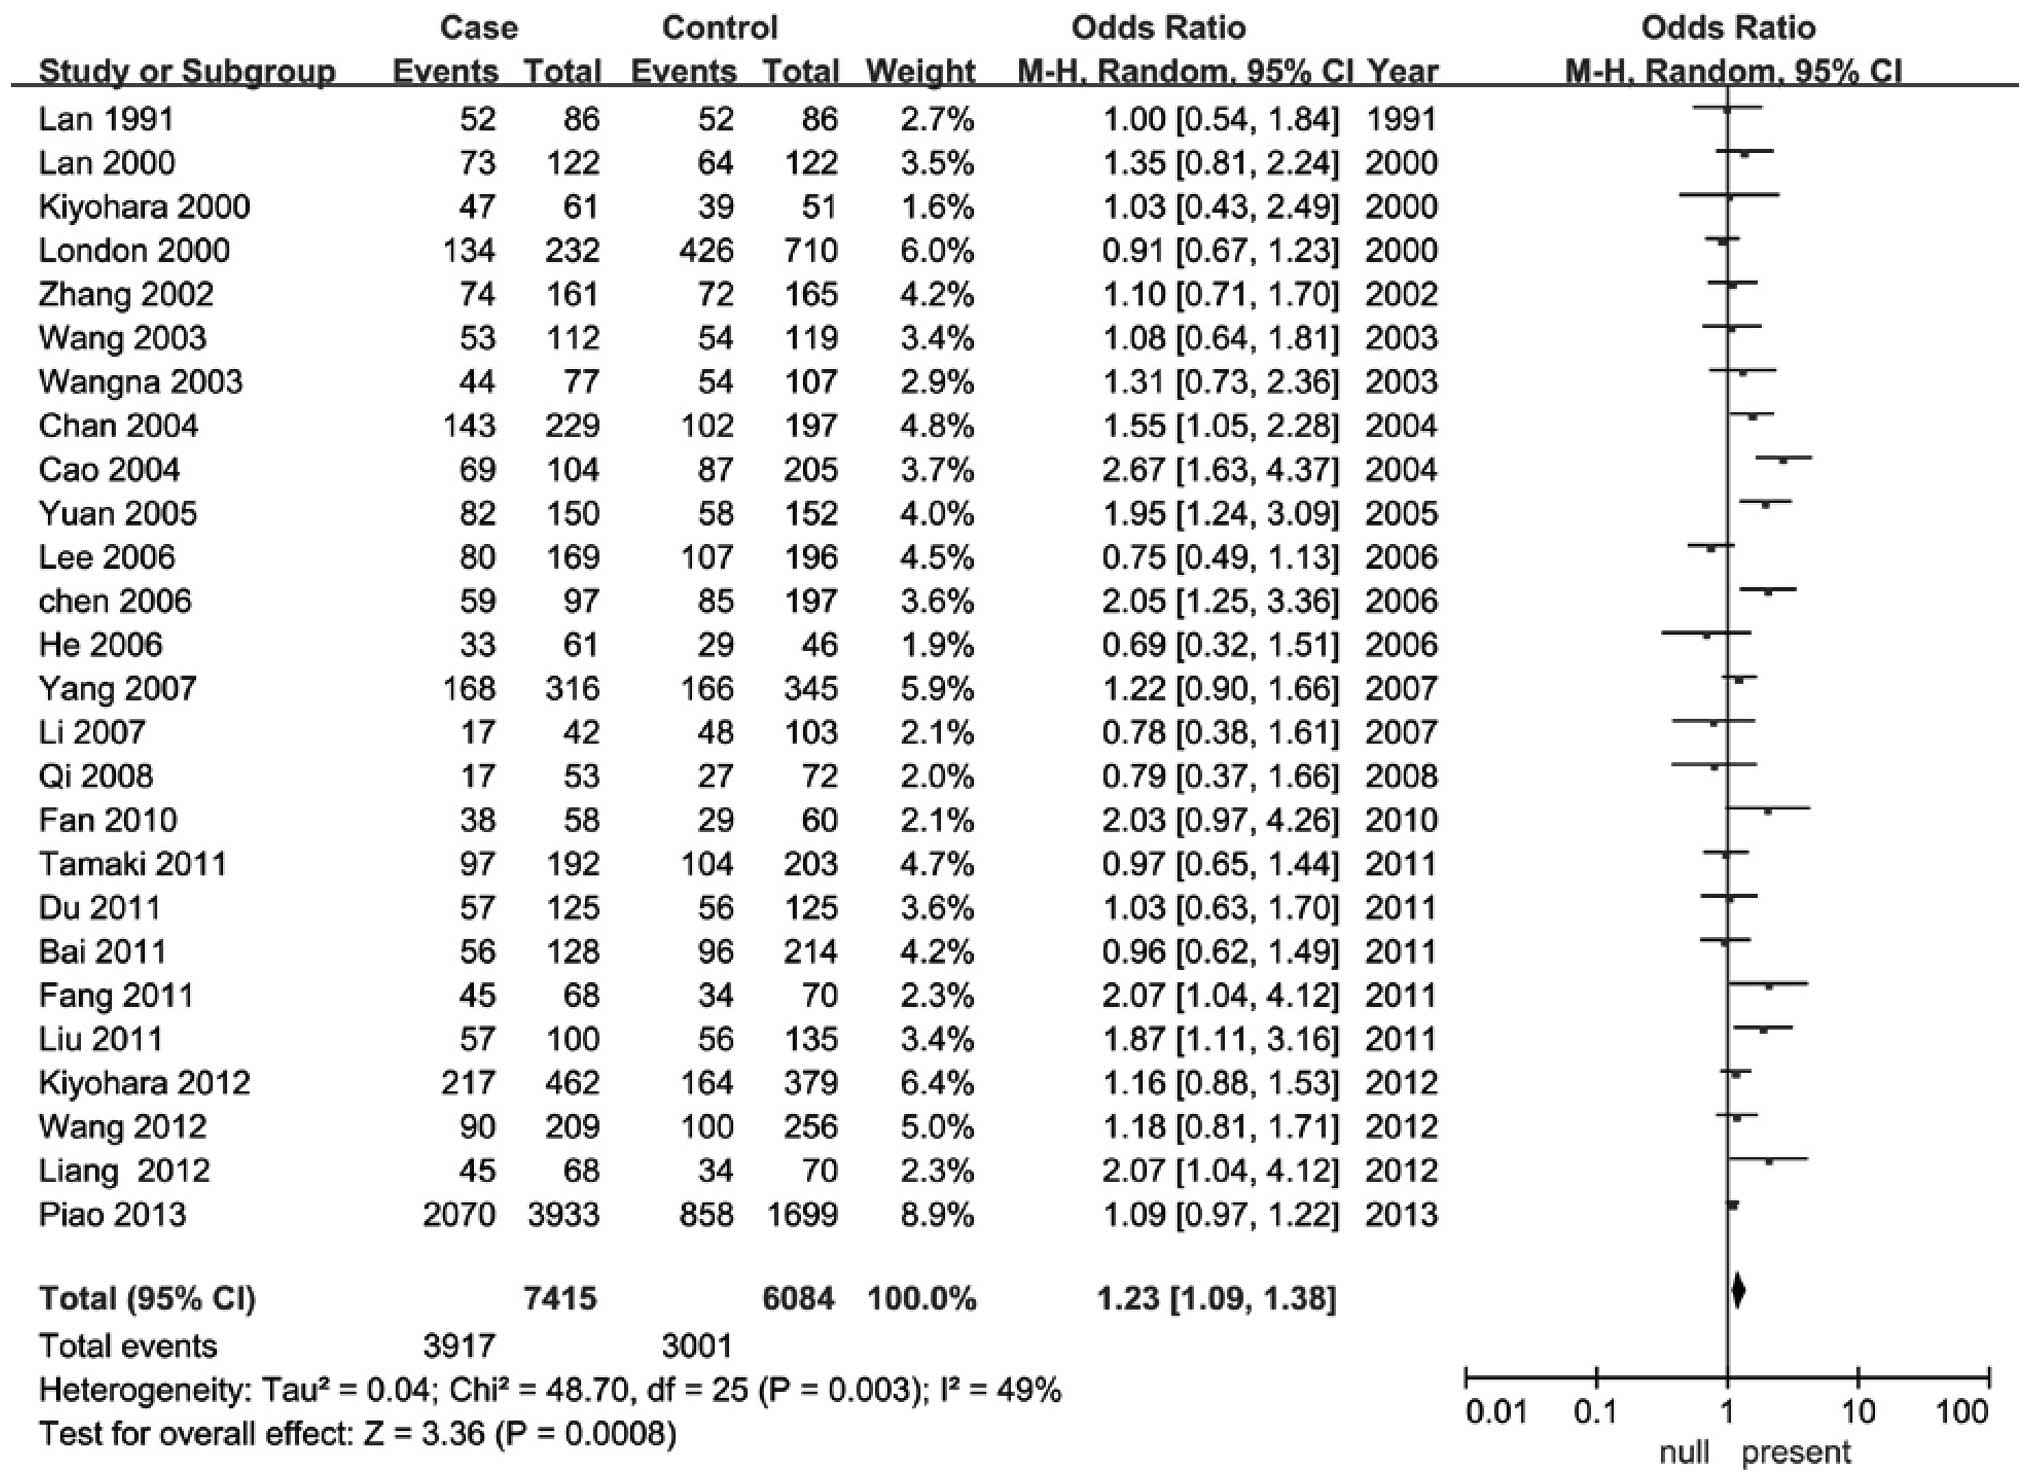 welding and lung cancer in a pooled analysis of case-control studies